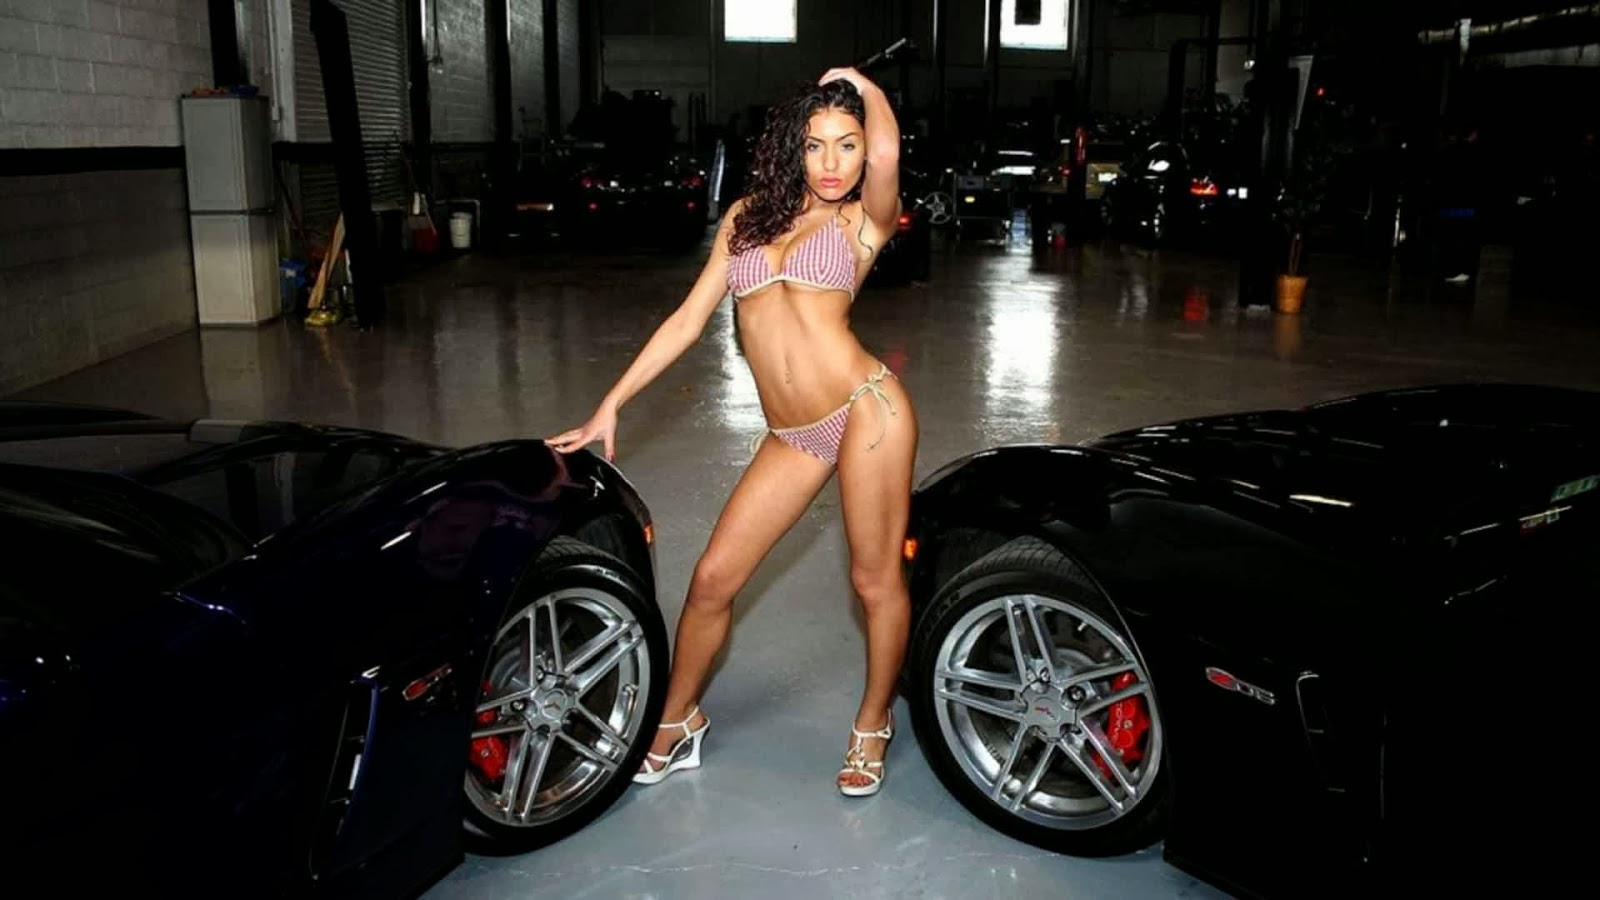 girl in car show sexs